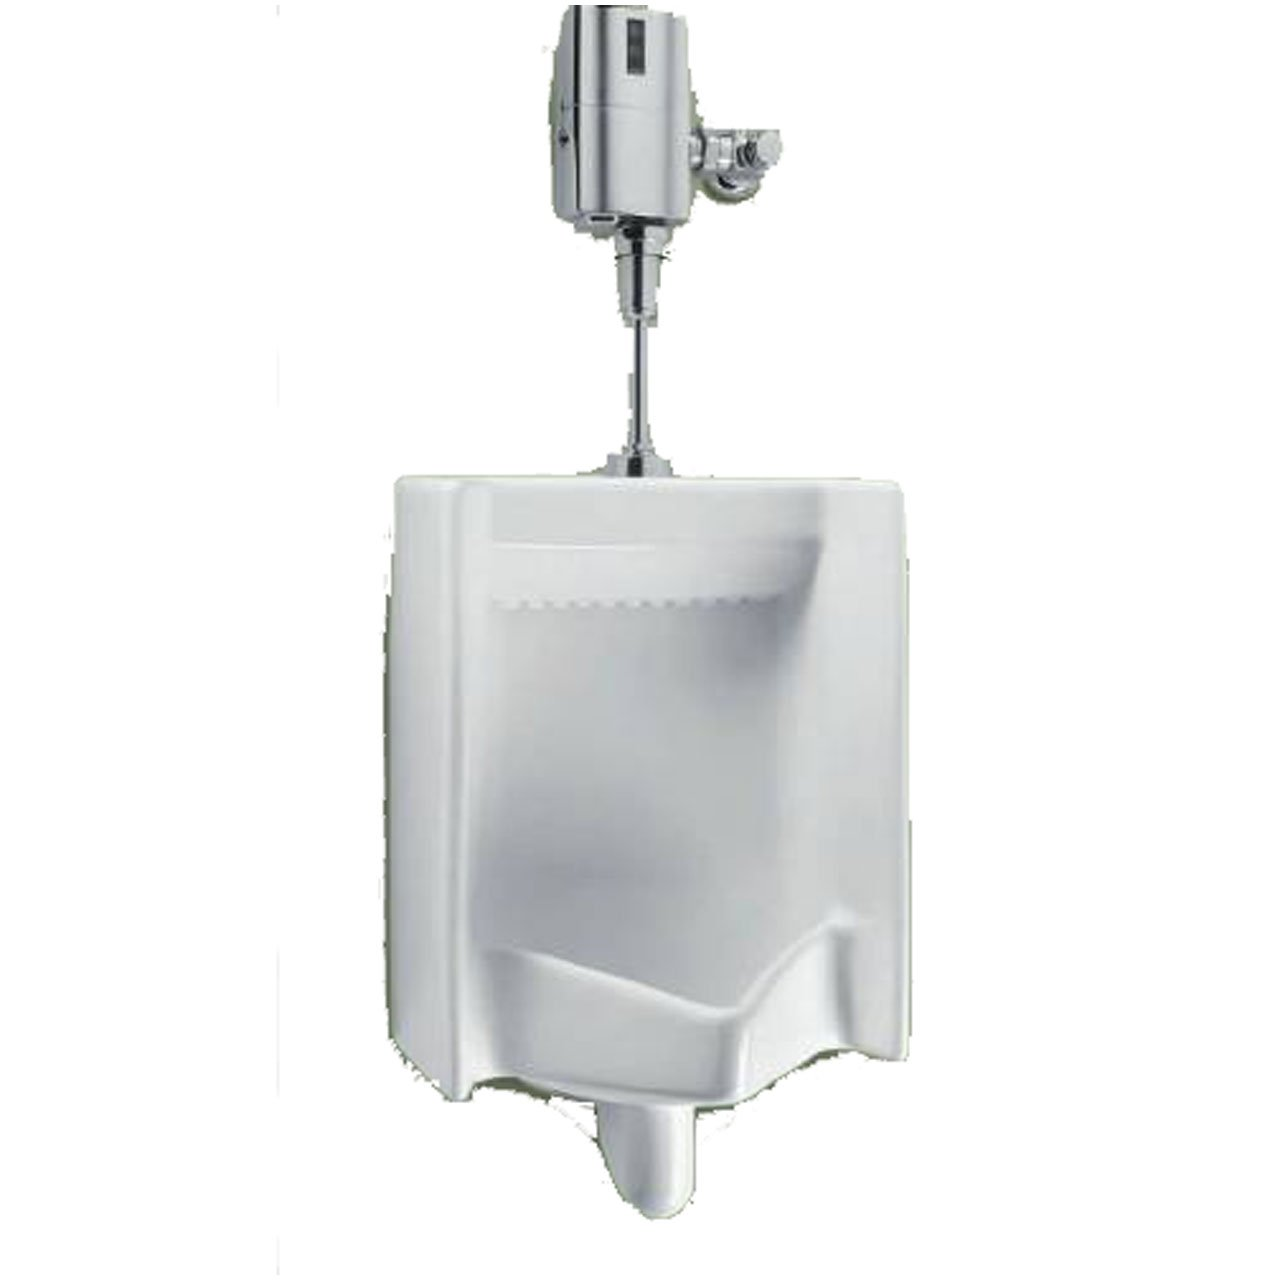 Toto UE445-1UN#01 Commercial UFV 0.125GPF Washout Urinal with EcoPower Flush Valve, Small, Cotton White